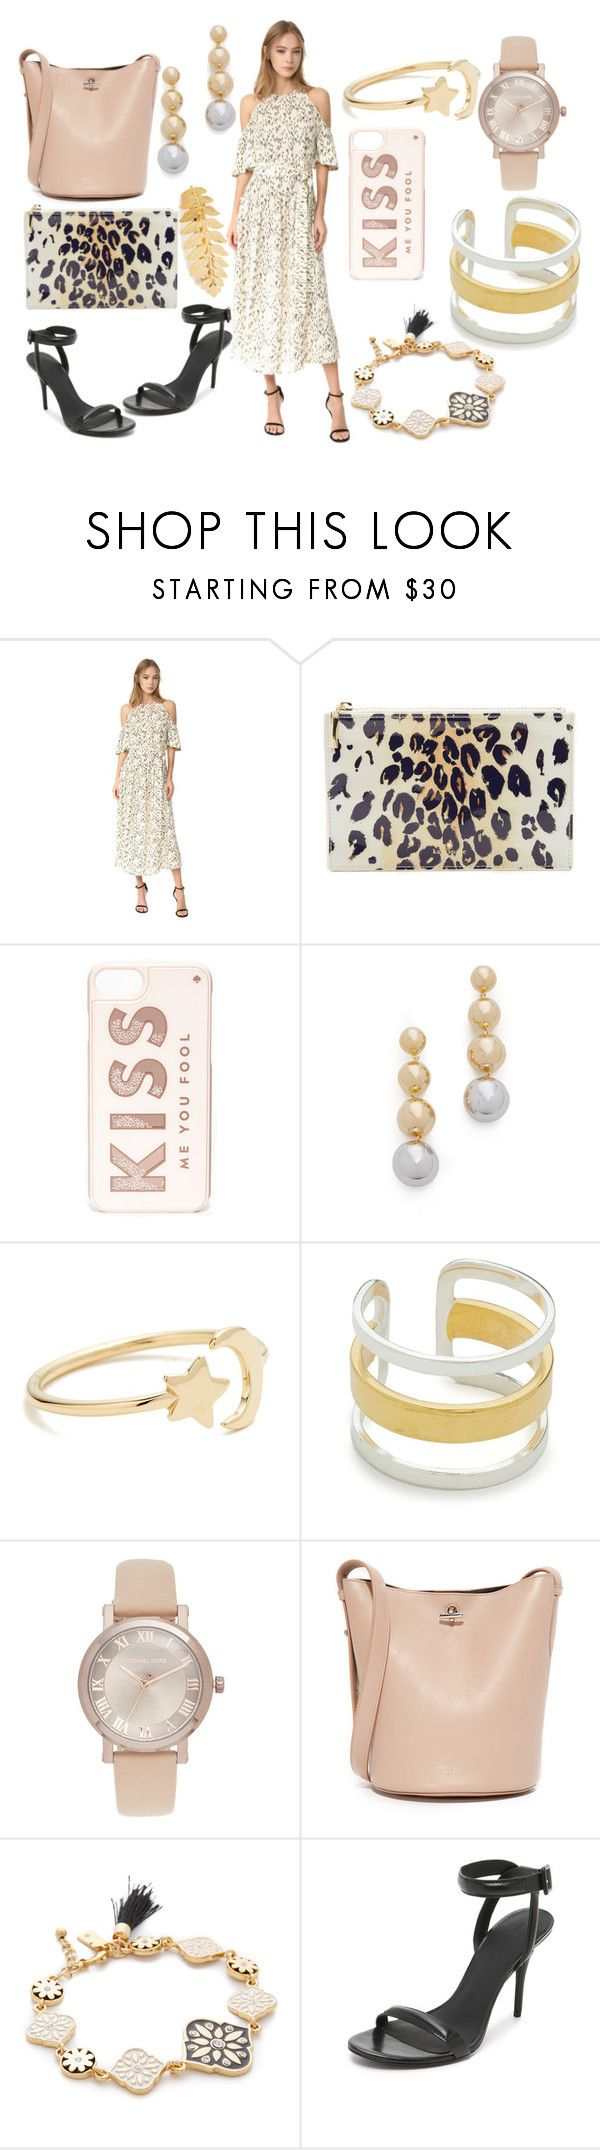 """Occasionally perfect"" by hillarymaguire ❤ liked on Polyvore featuring Lela Rose, Kate Spade, Elizabeth and James, Ariel Gordon, Maya Magal, Michael Kors, Rochas, Alexander Wang, Avigail Adam and fabulous"